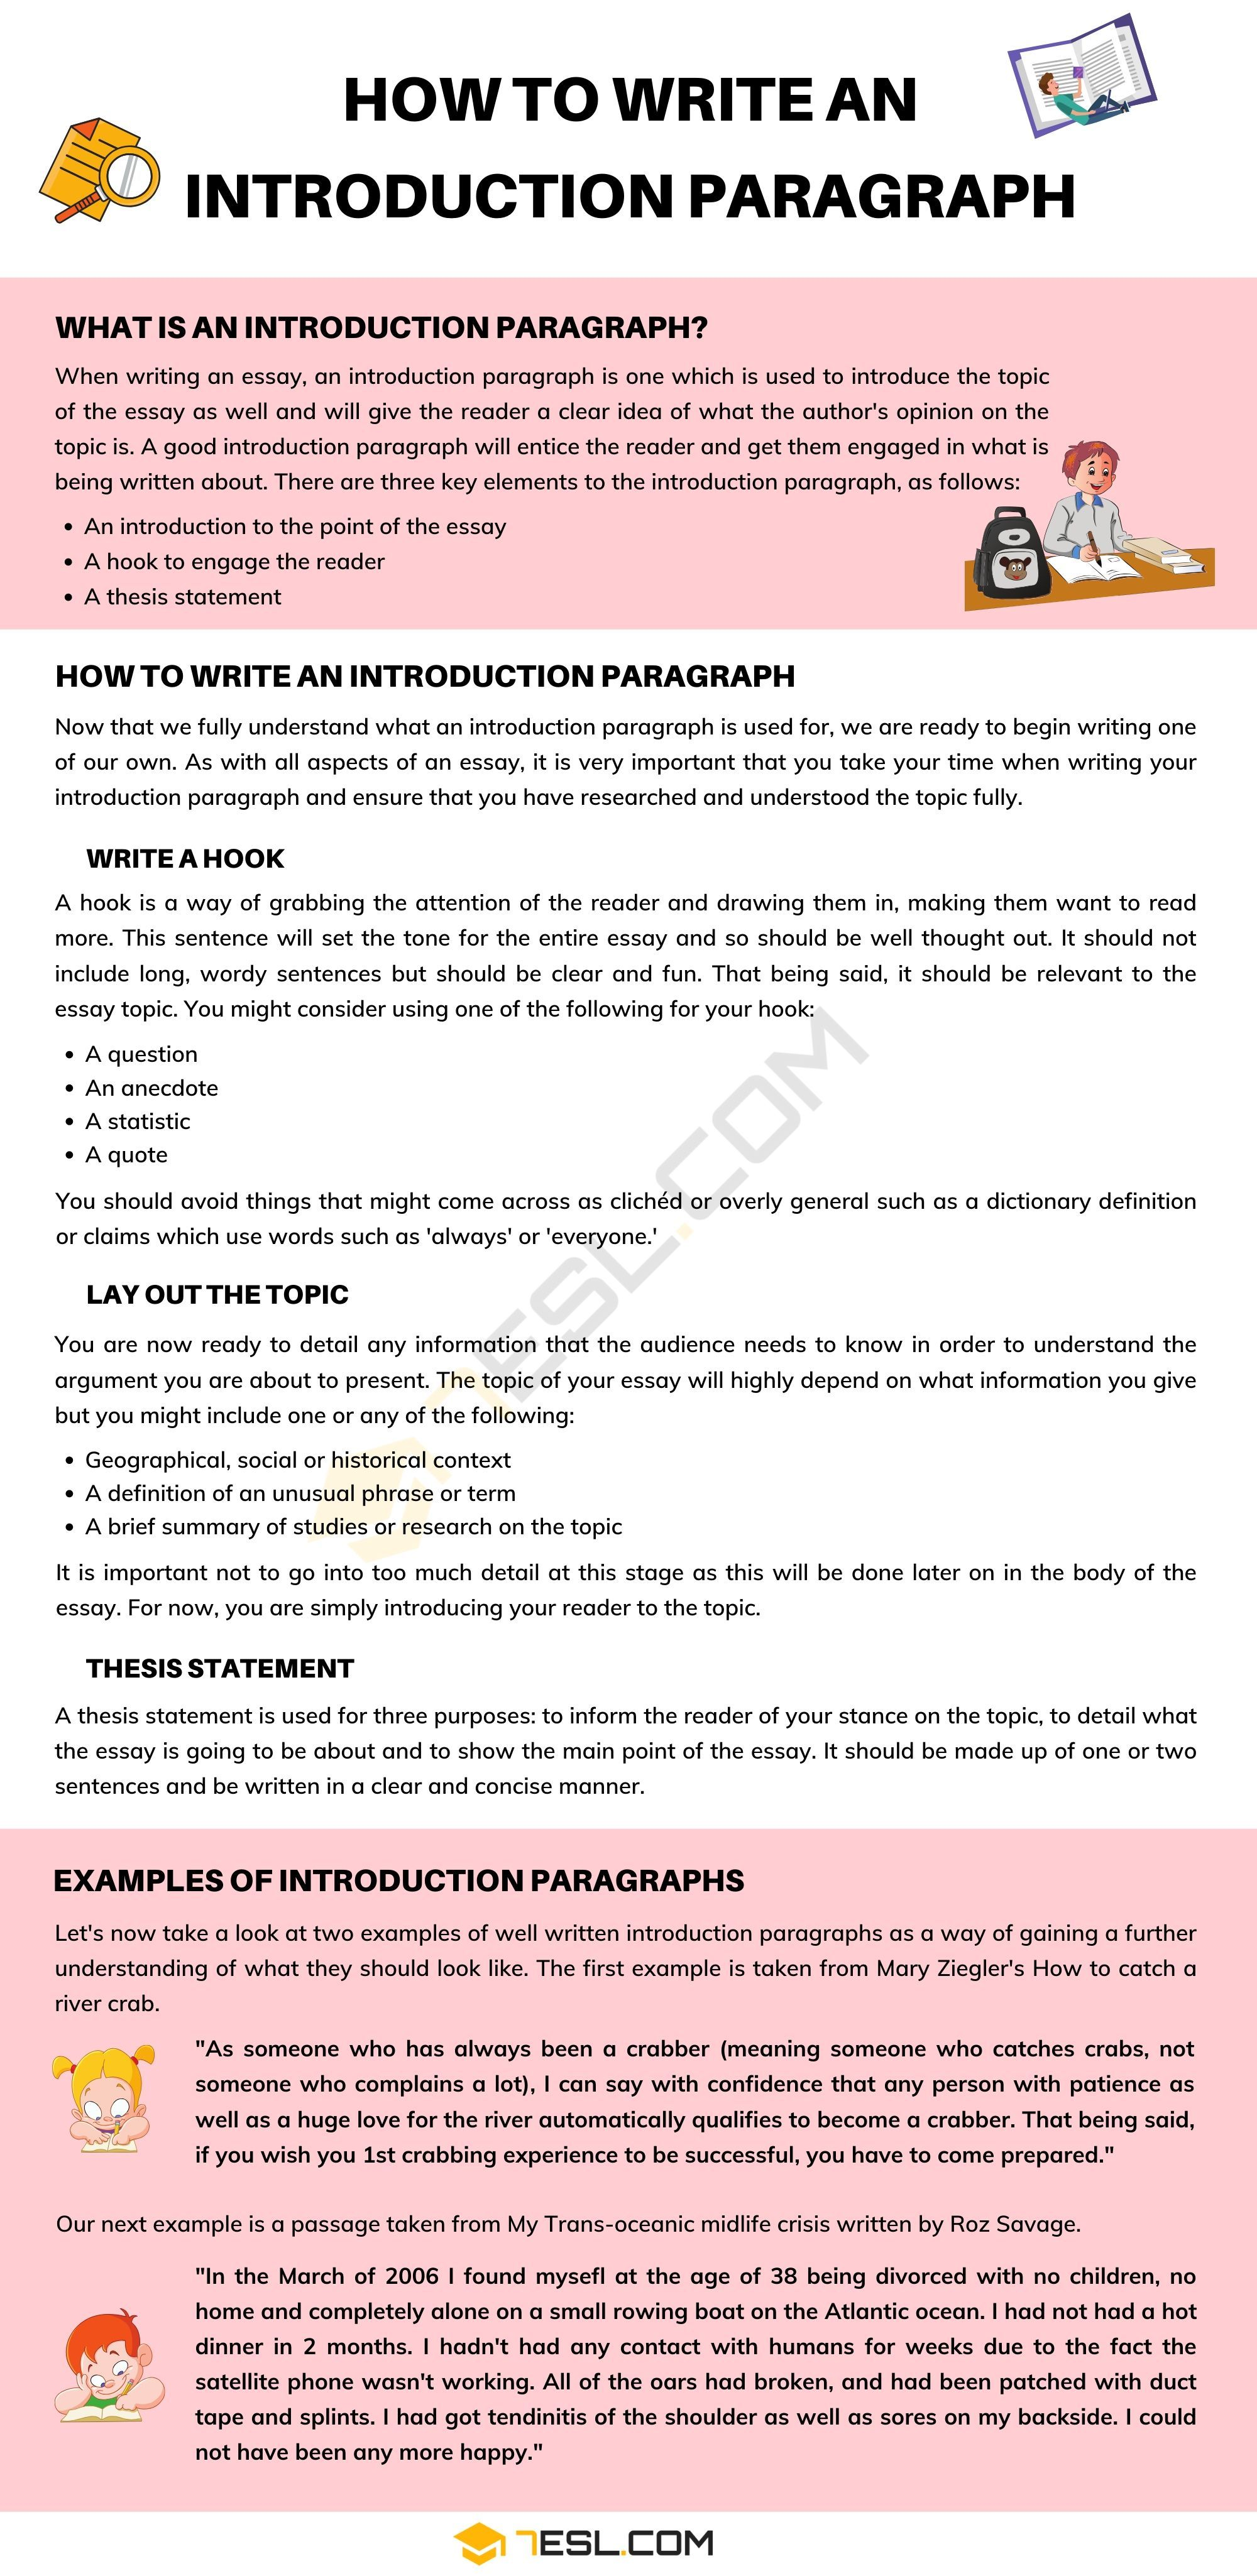 Help me write a introduction paragraph. How To Write Introduction